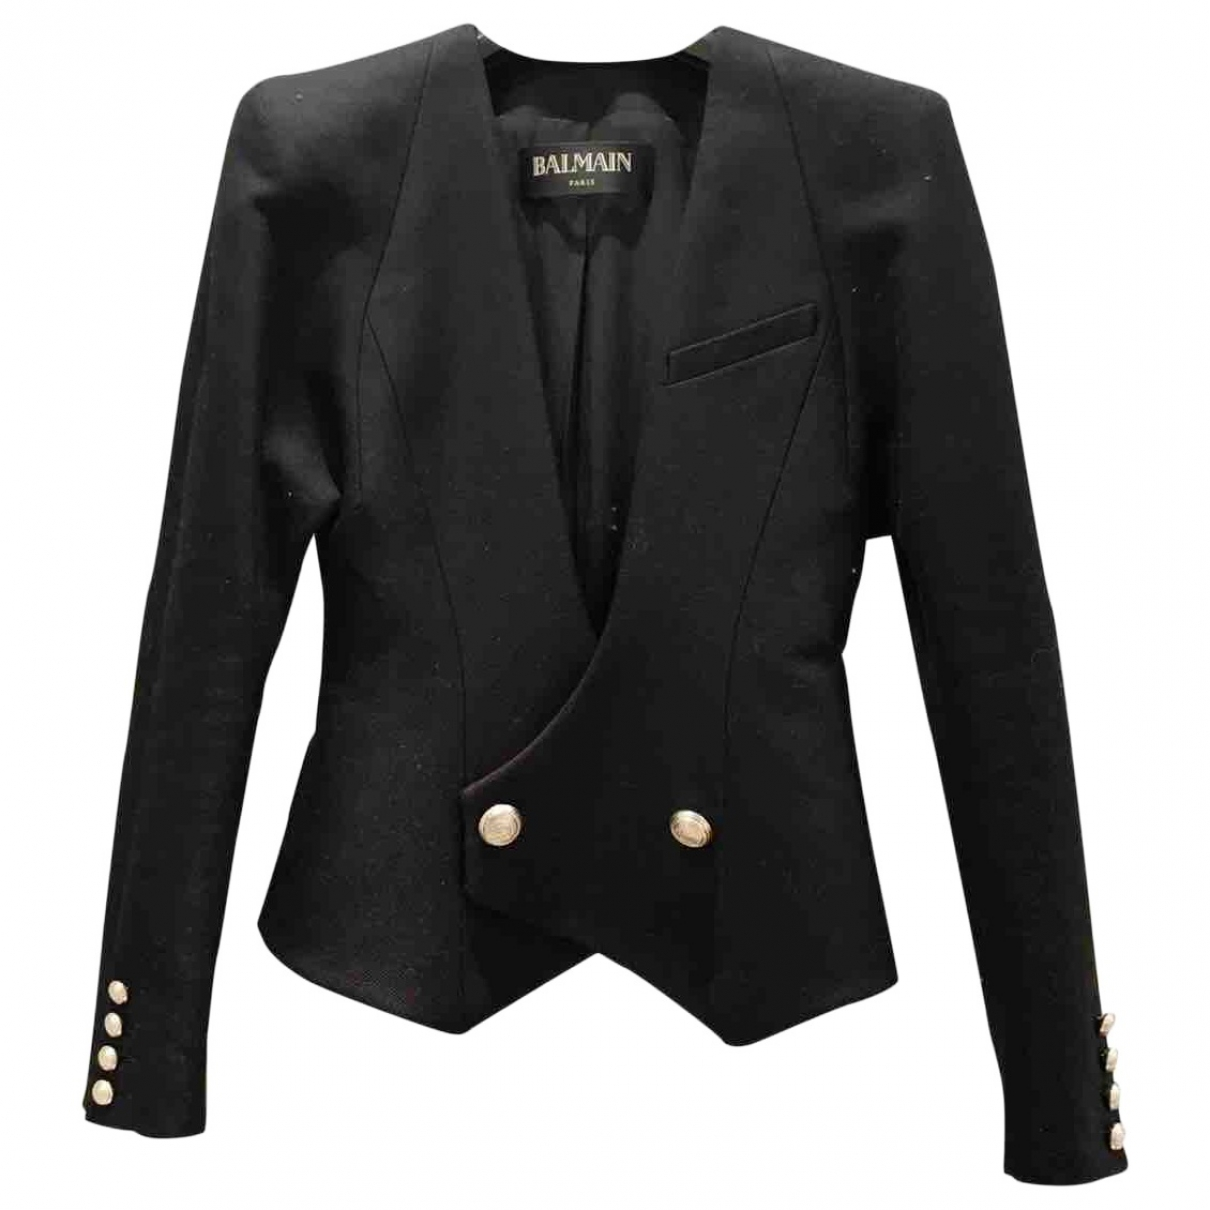 Balmain \N Black Cotton jacket for Women 36 FR